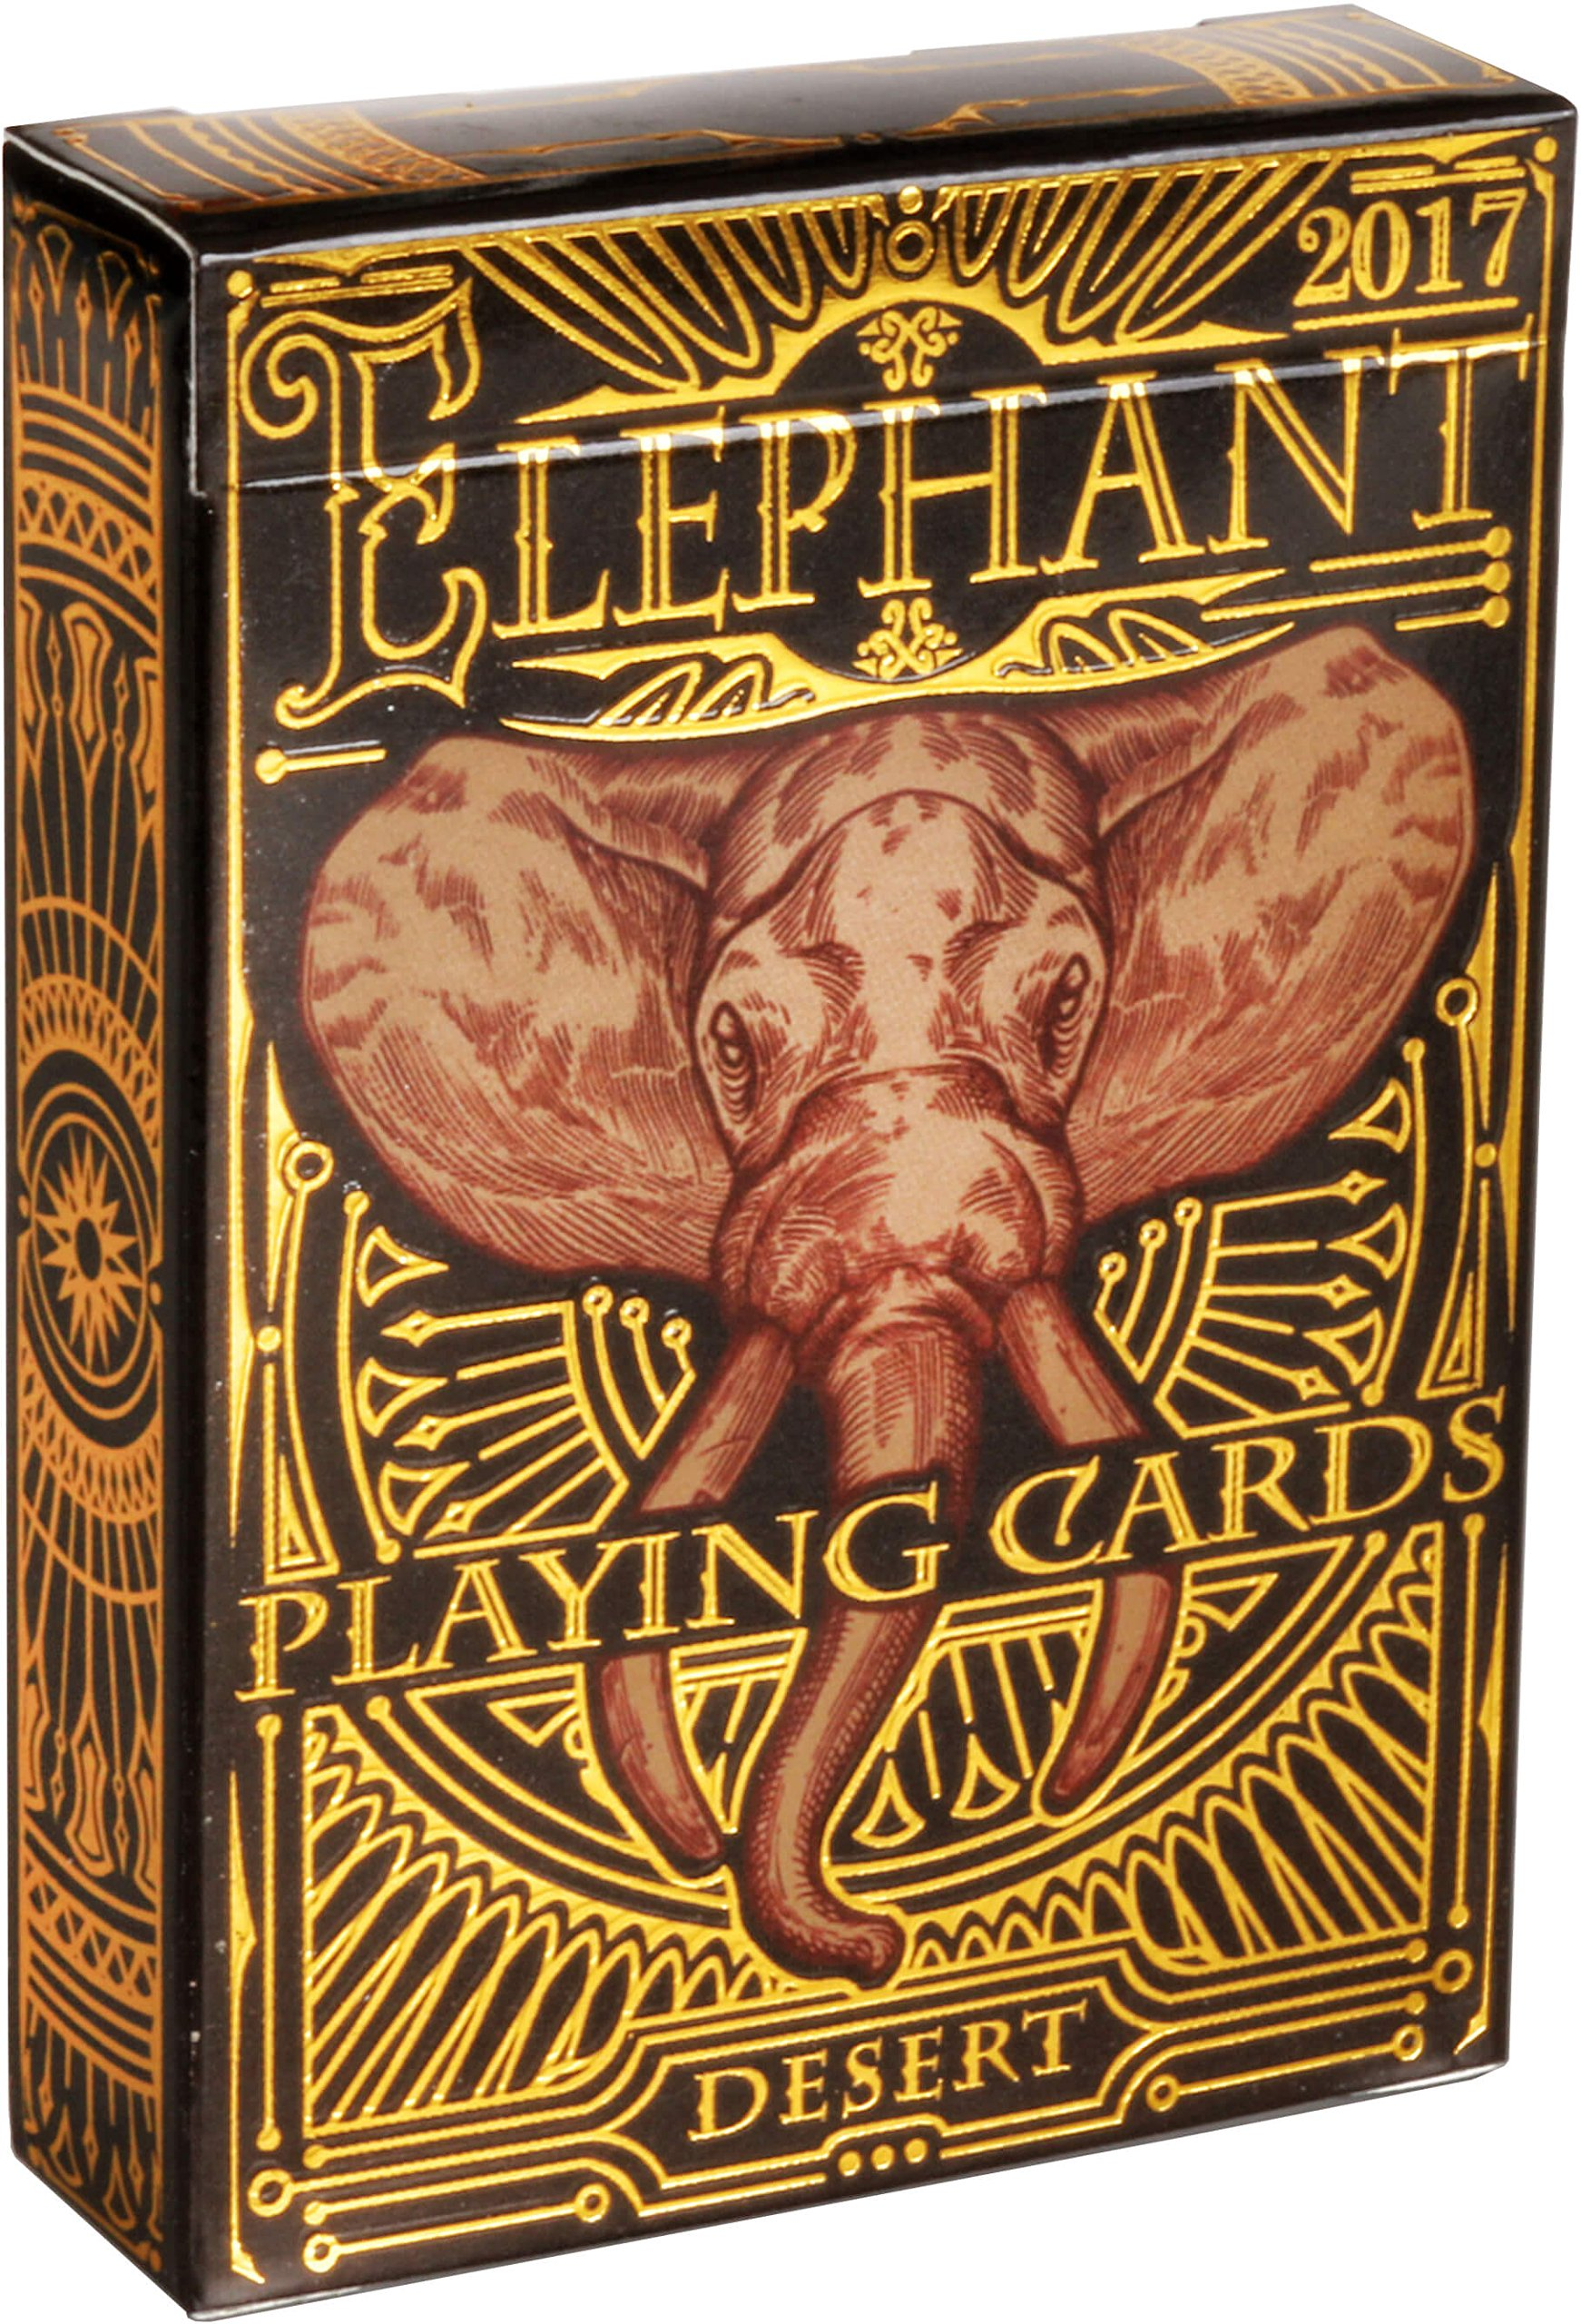 ELEPHANT PLAYING CARDS, Premium Deck of Cards, Cool Intricate Detail, Best Poker Cards, Unique Bright Rainbow & Red Colors for Kids & Adults, Playing Card Decks Games, Standard Size by Elephant Playing Cards